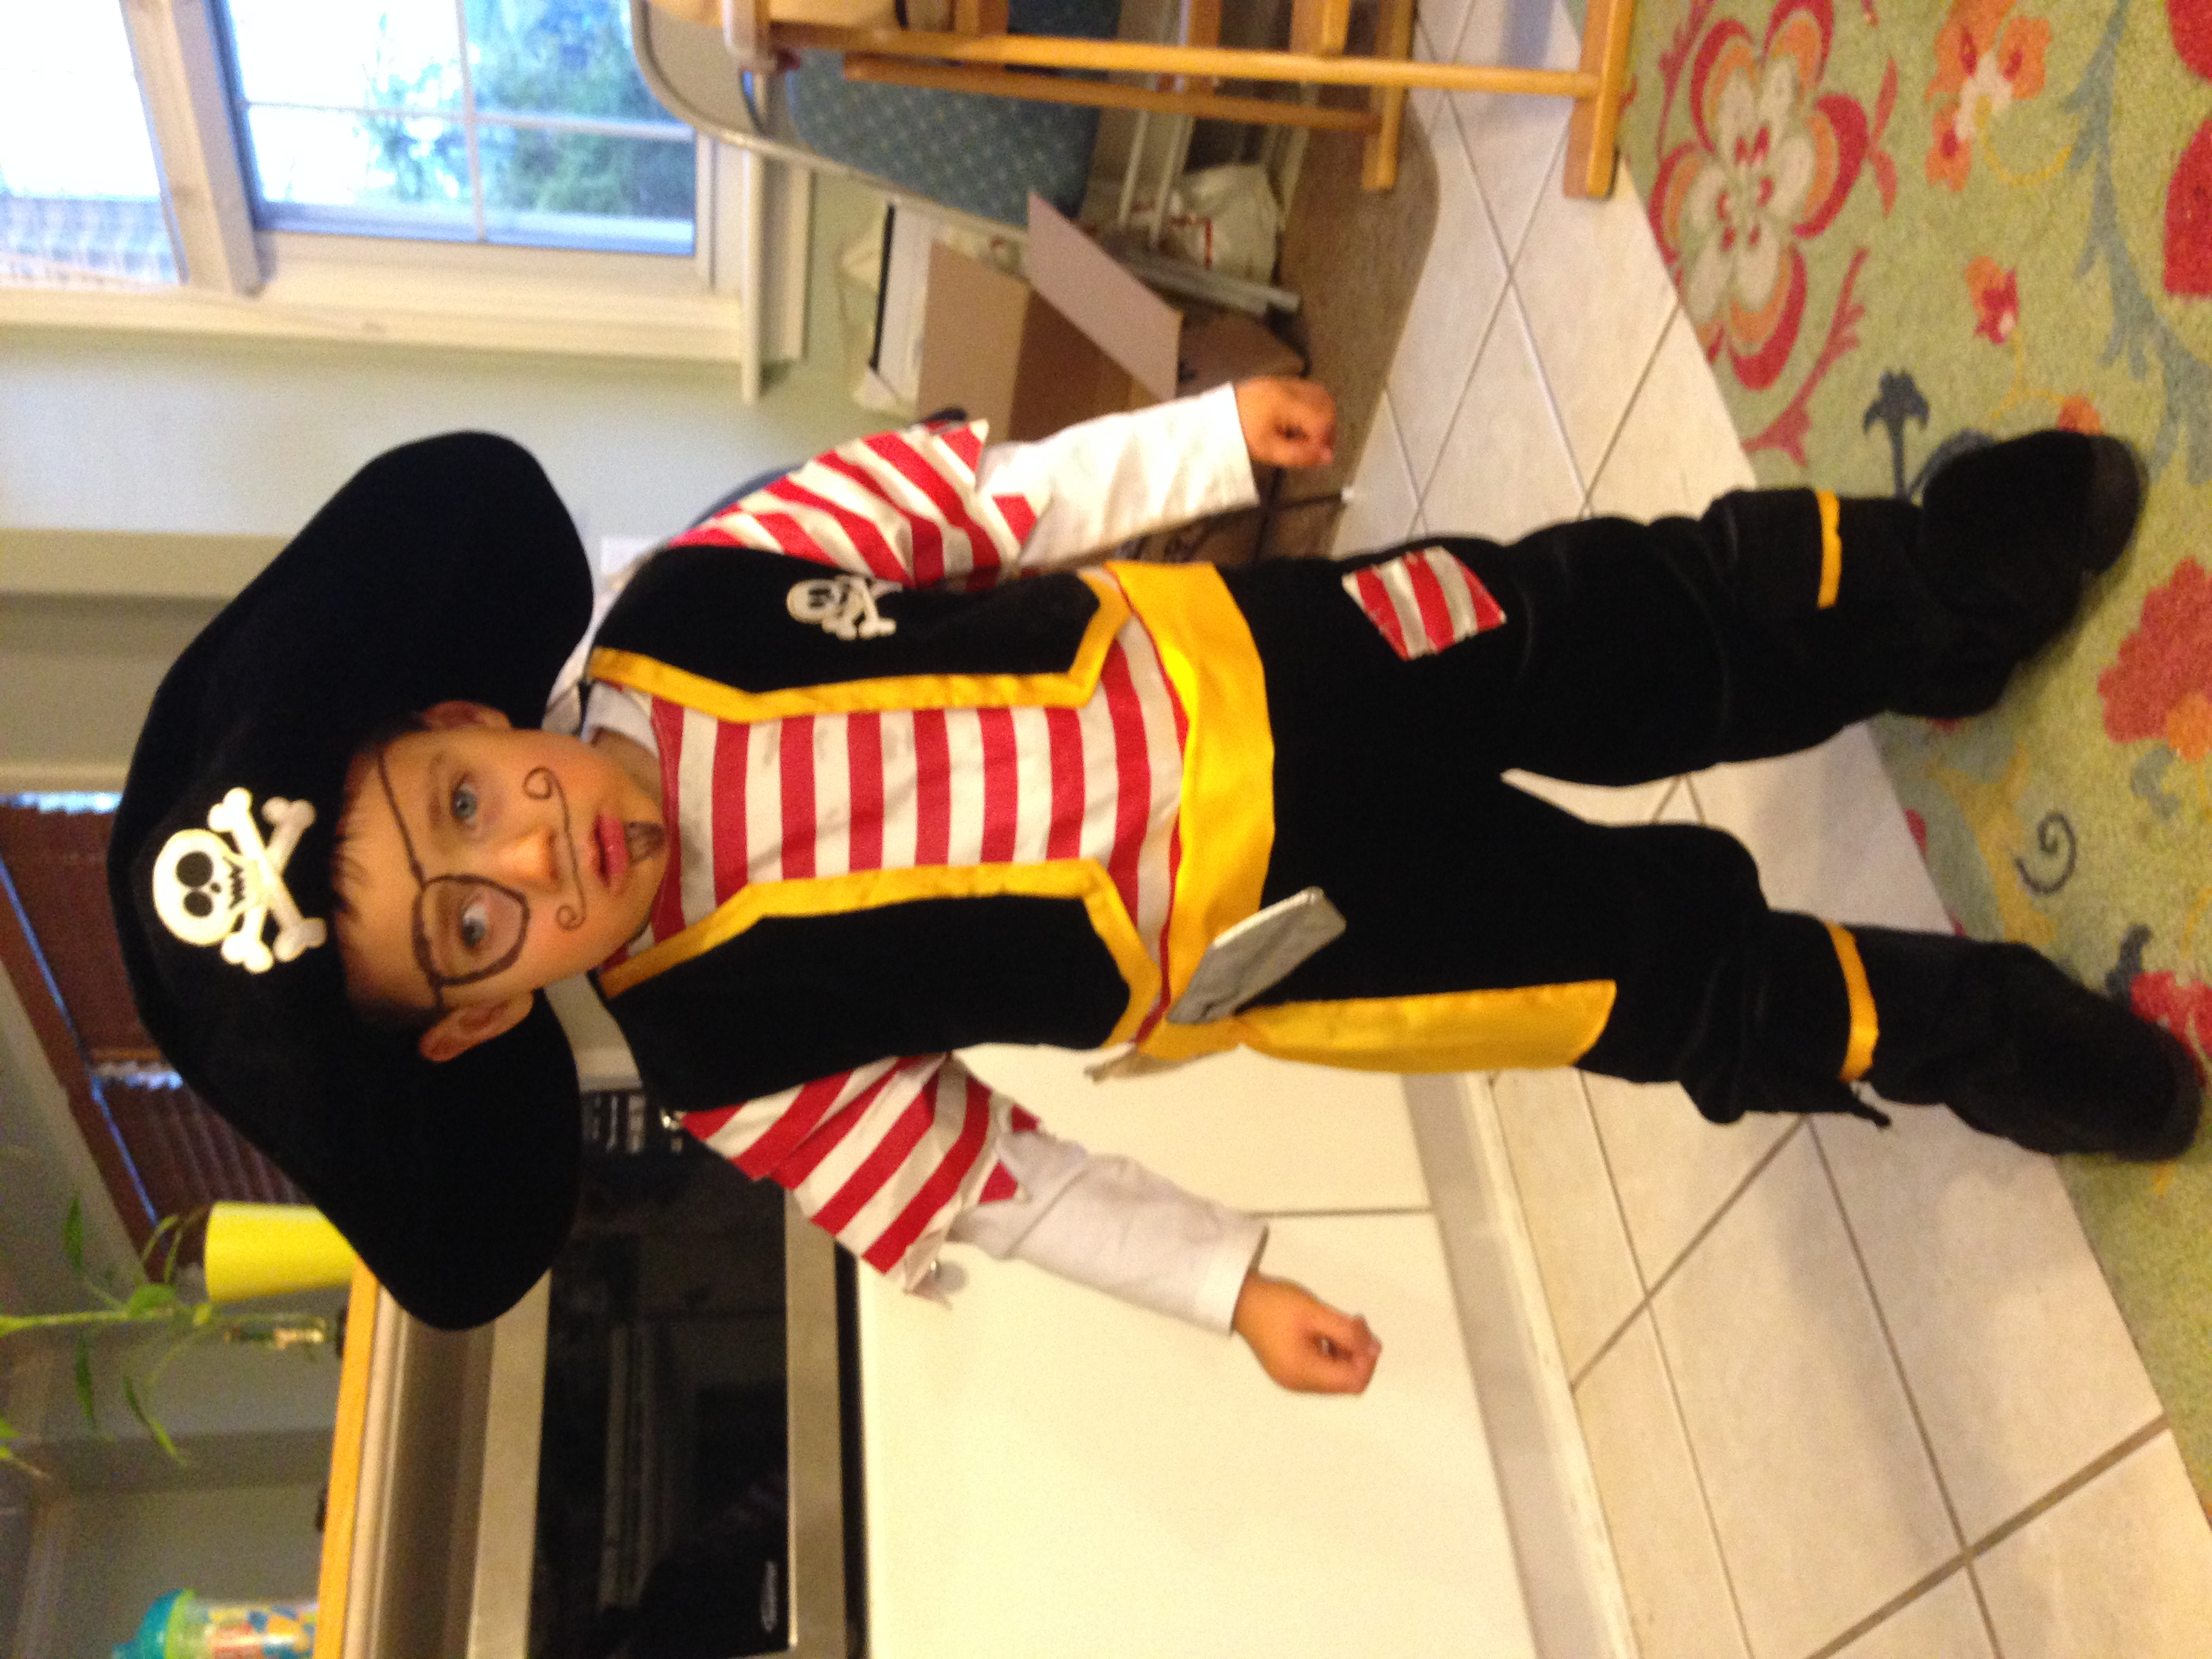 He was able to stand and take a couple steps without assistance by Halloween 2013. My little pirate!